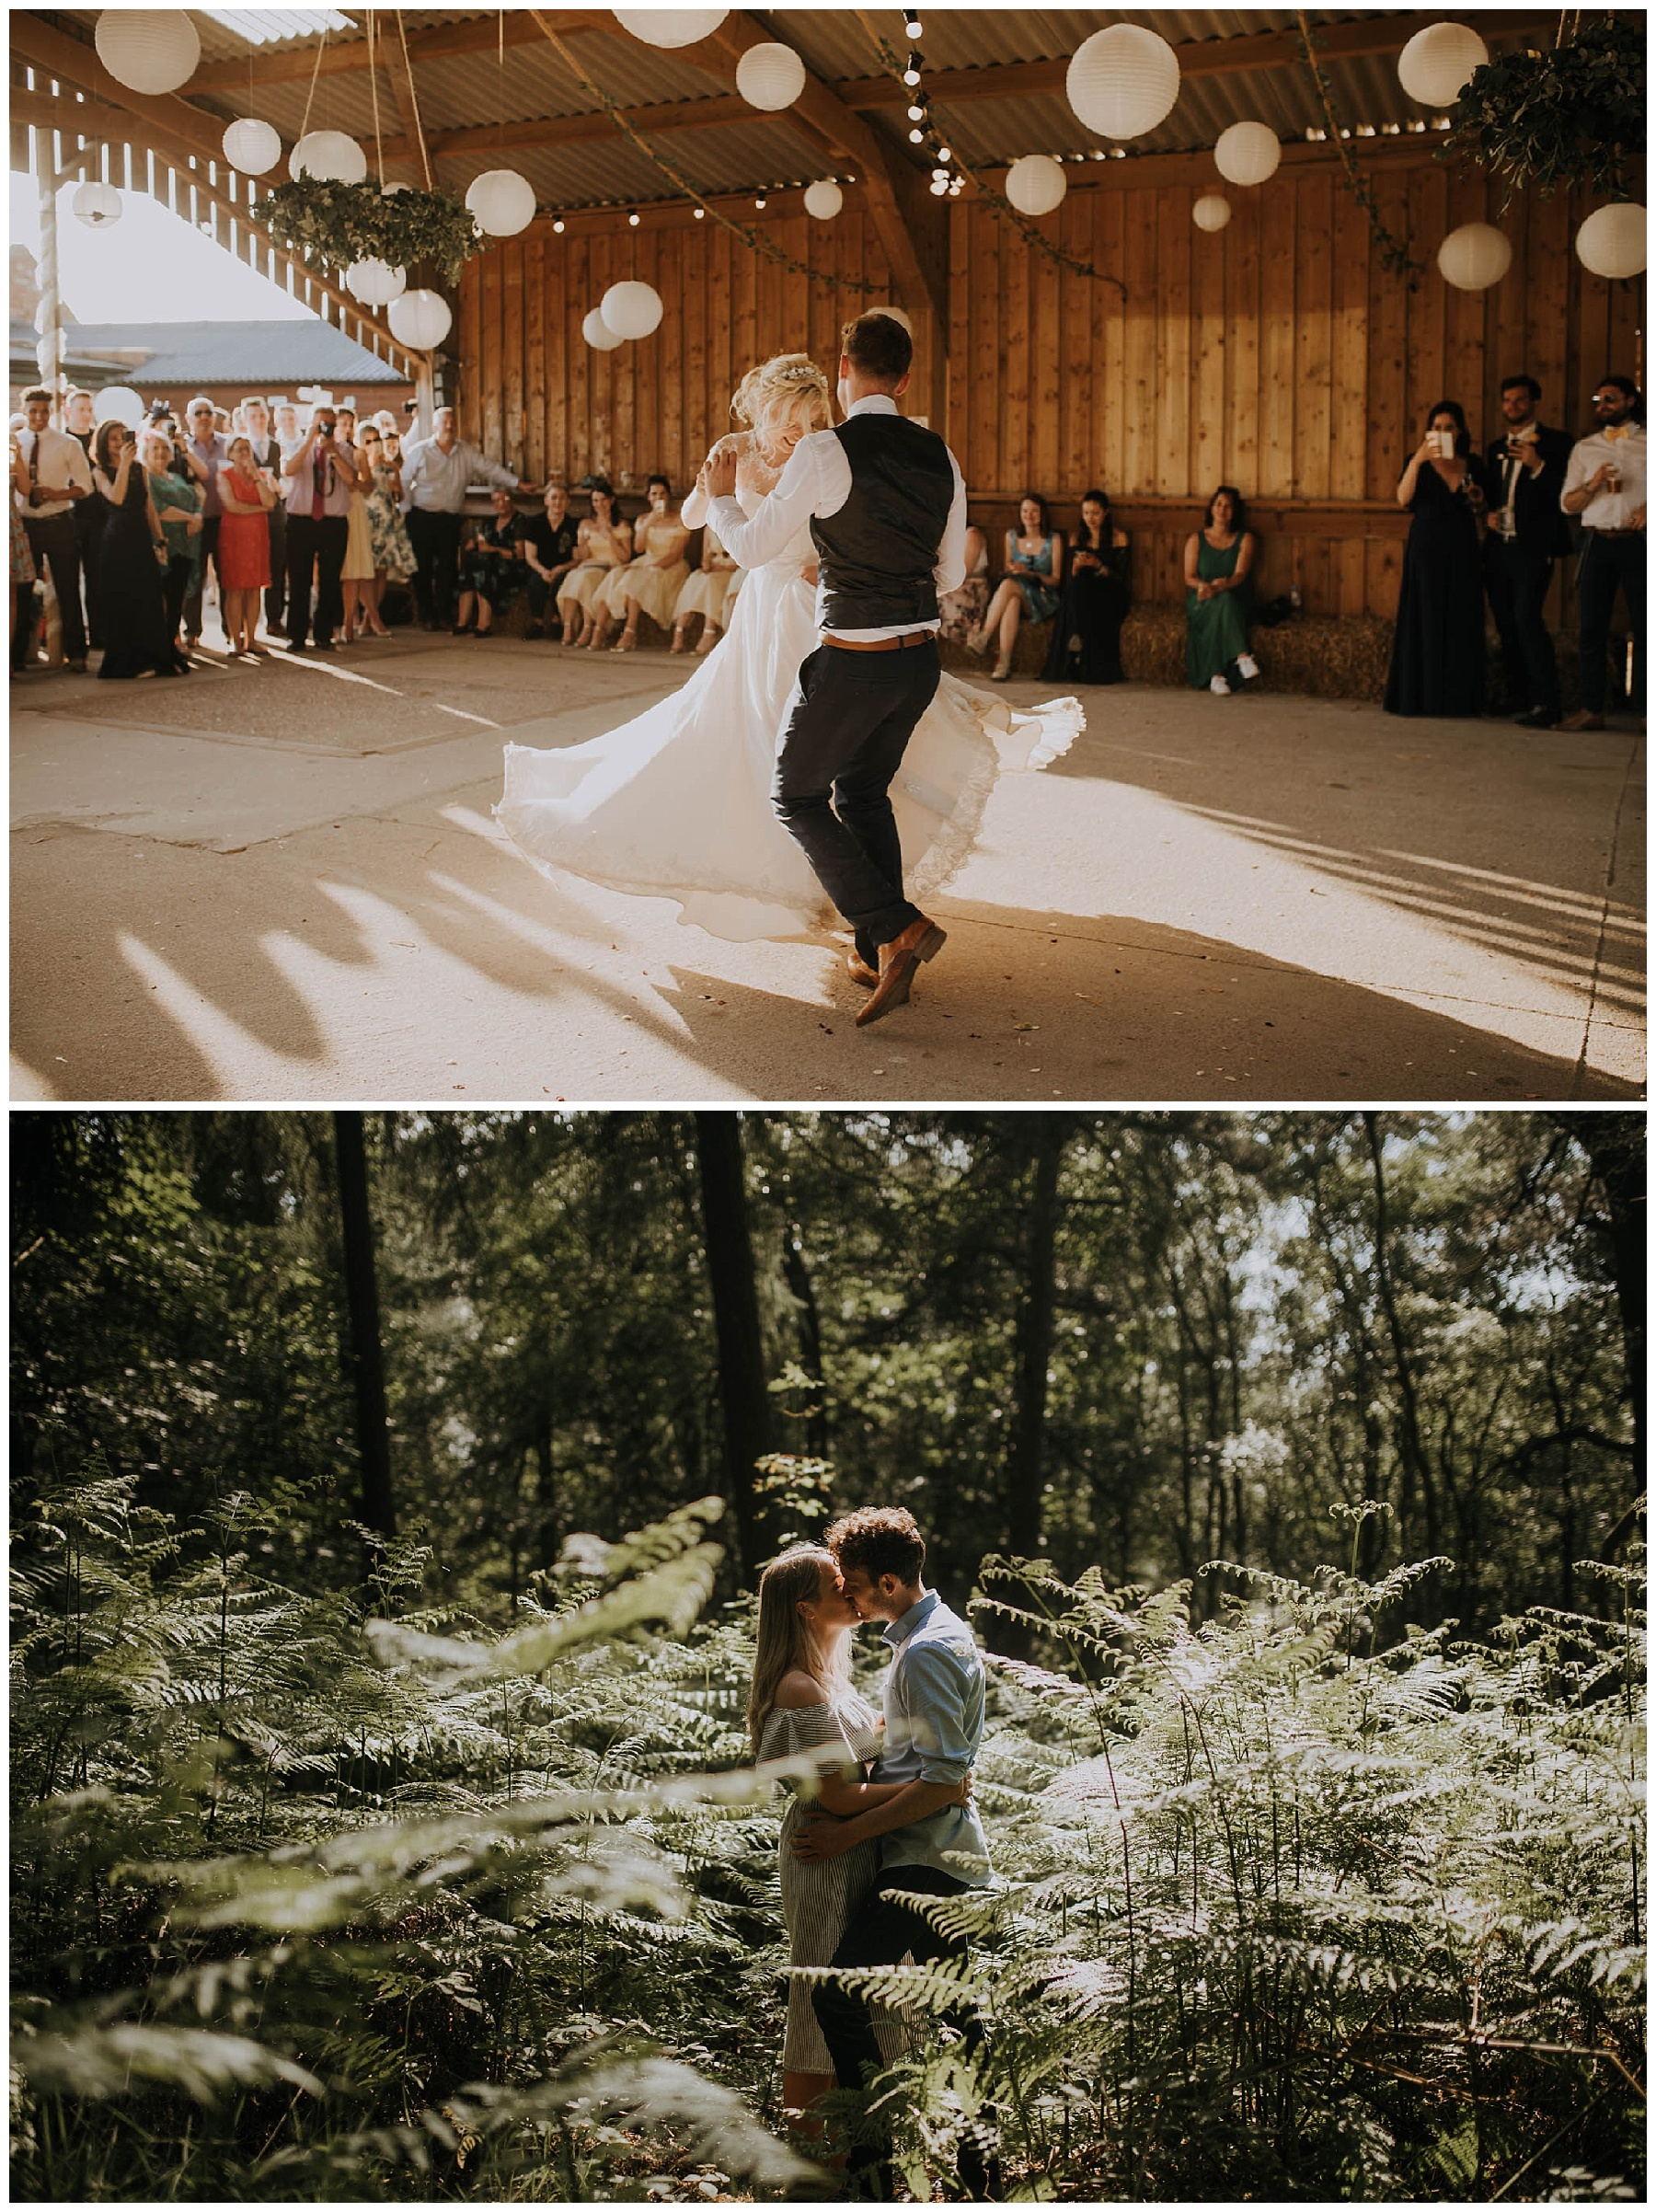 couples dance together on their wedding day